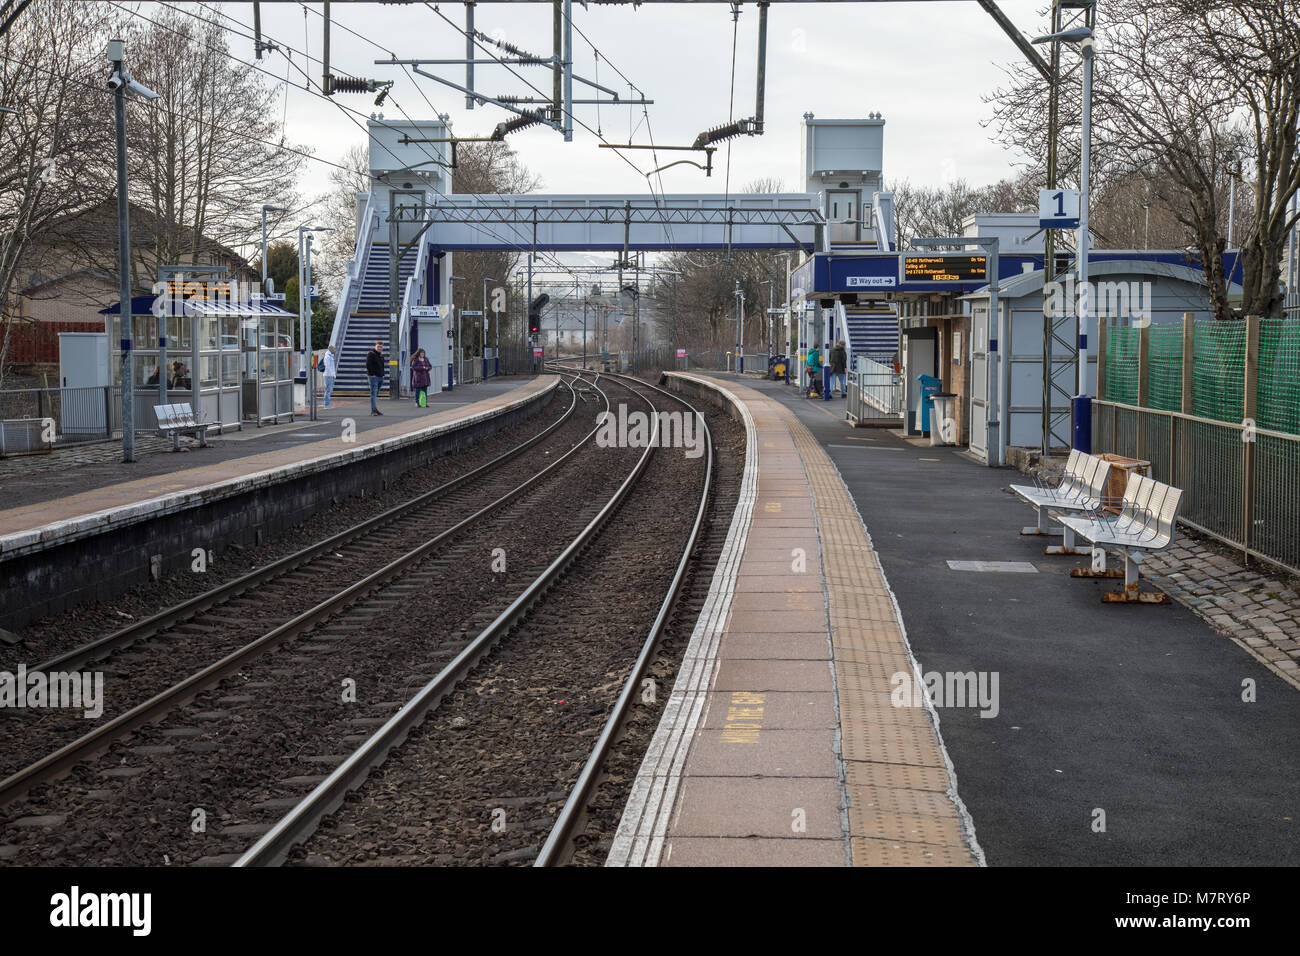 Westerton train station in Glasgow. This a westbound view, the next station on the line is Drumchapel - Stock Image